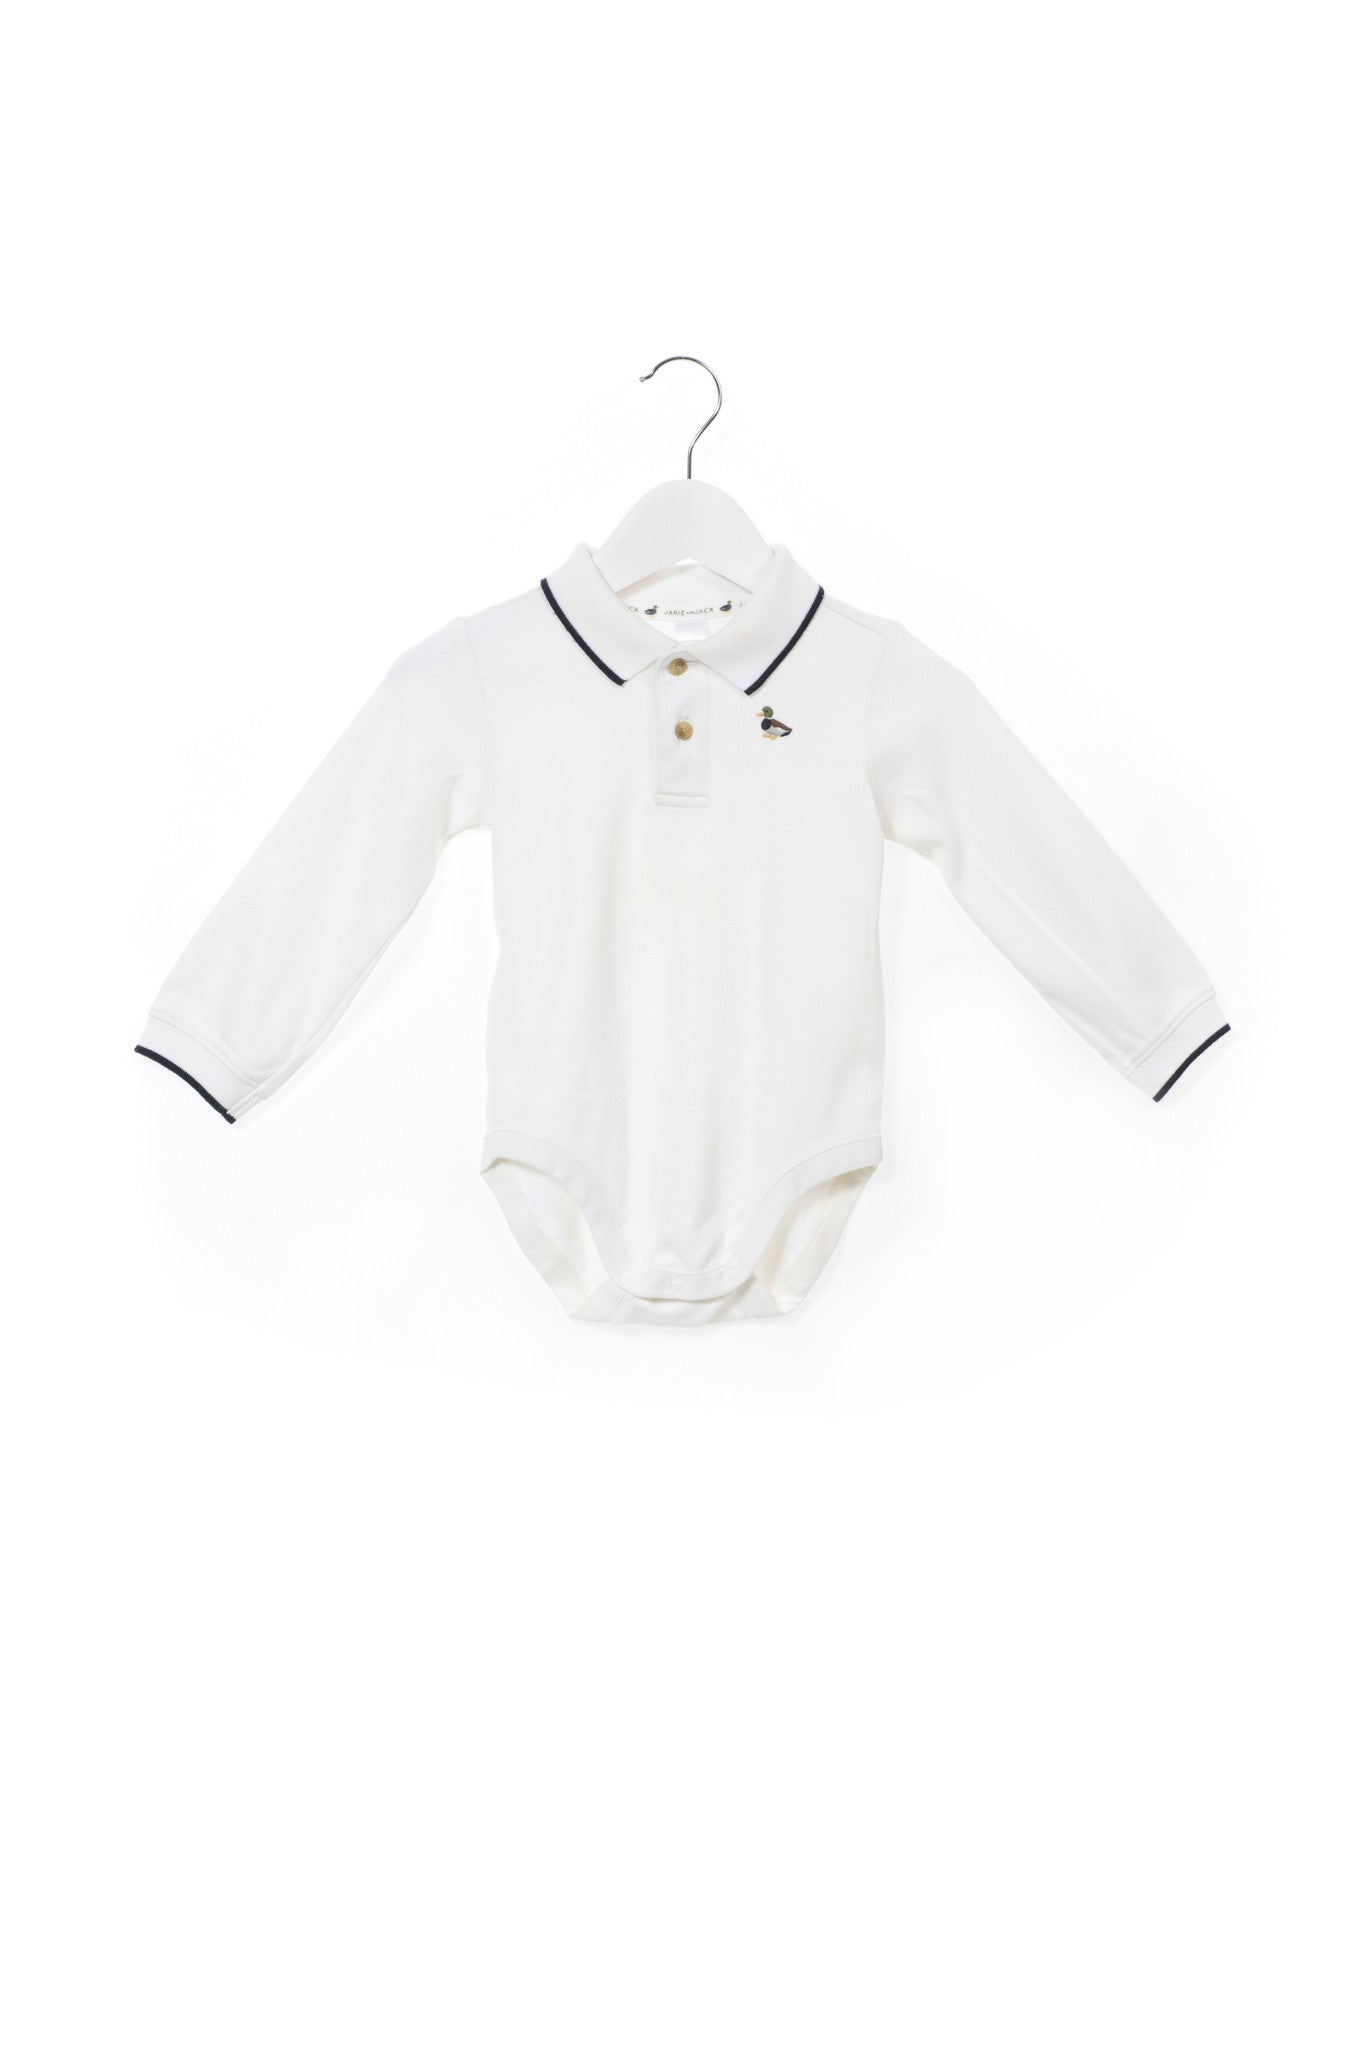 10001065 Janie & Jack Baby~Bodysuit 18-24M at Retykle